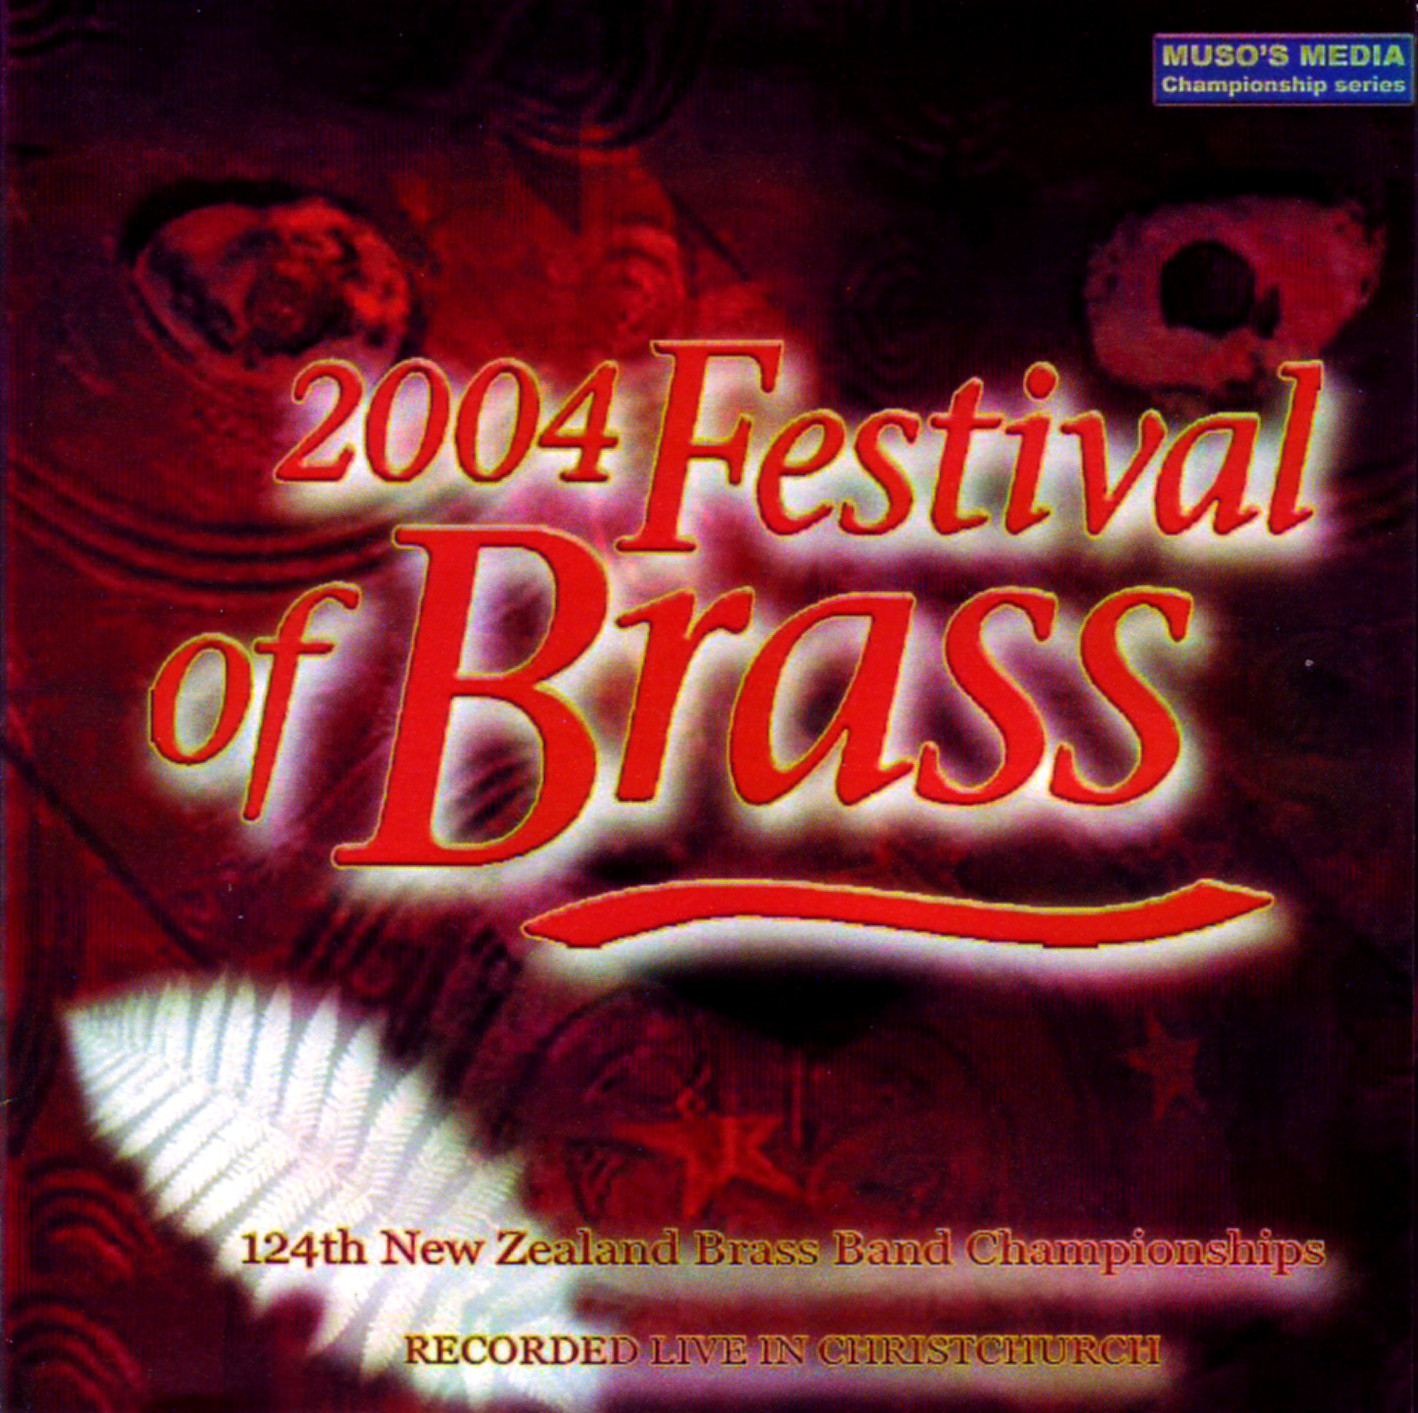 2004 Festival of Brass